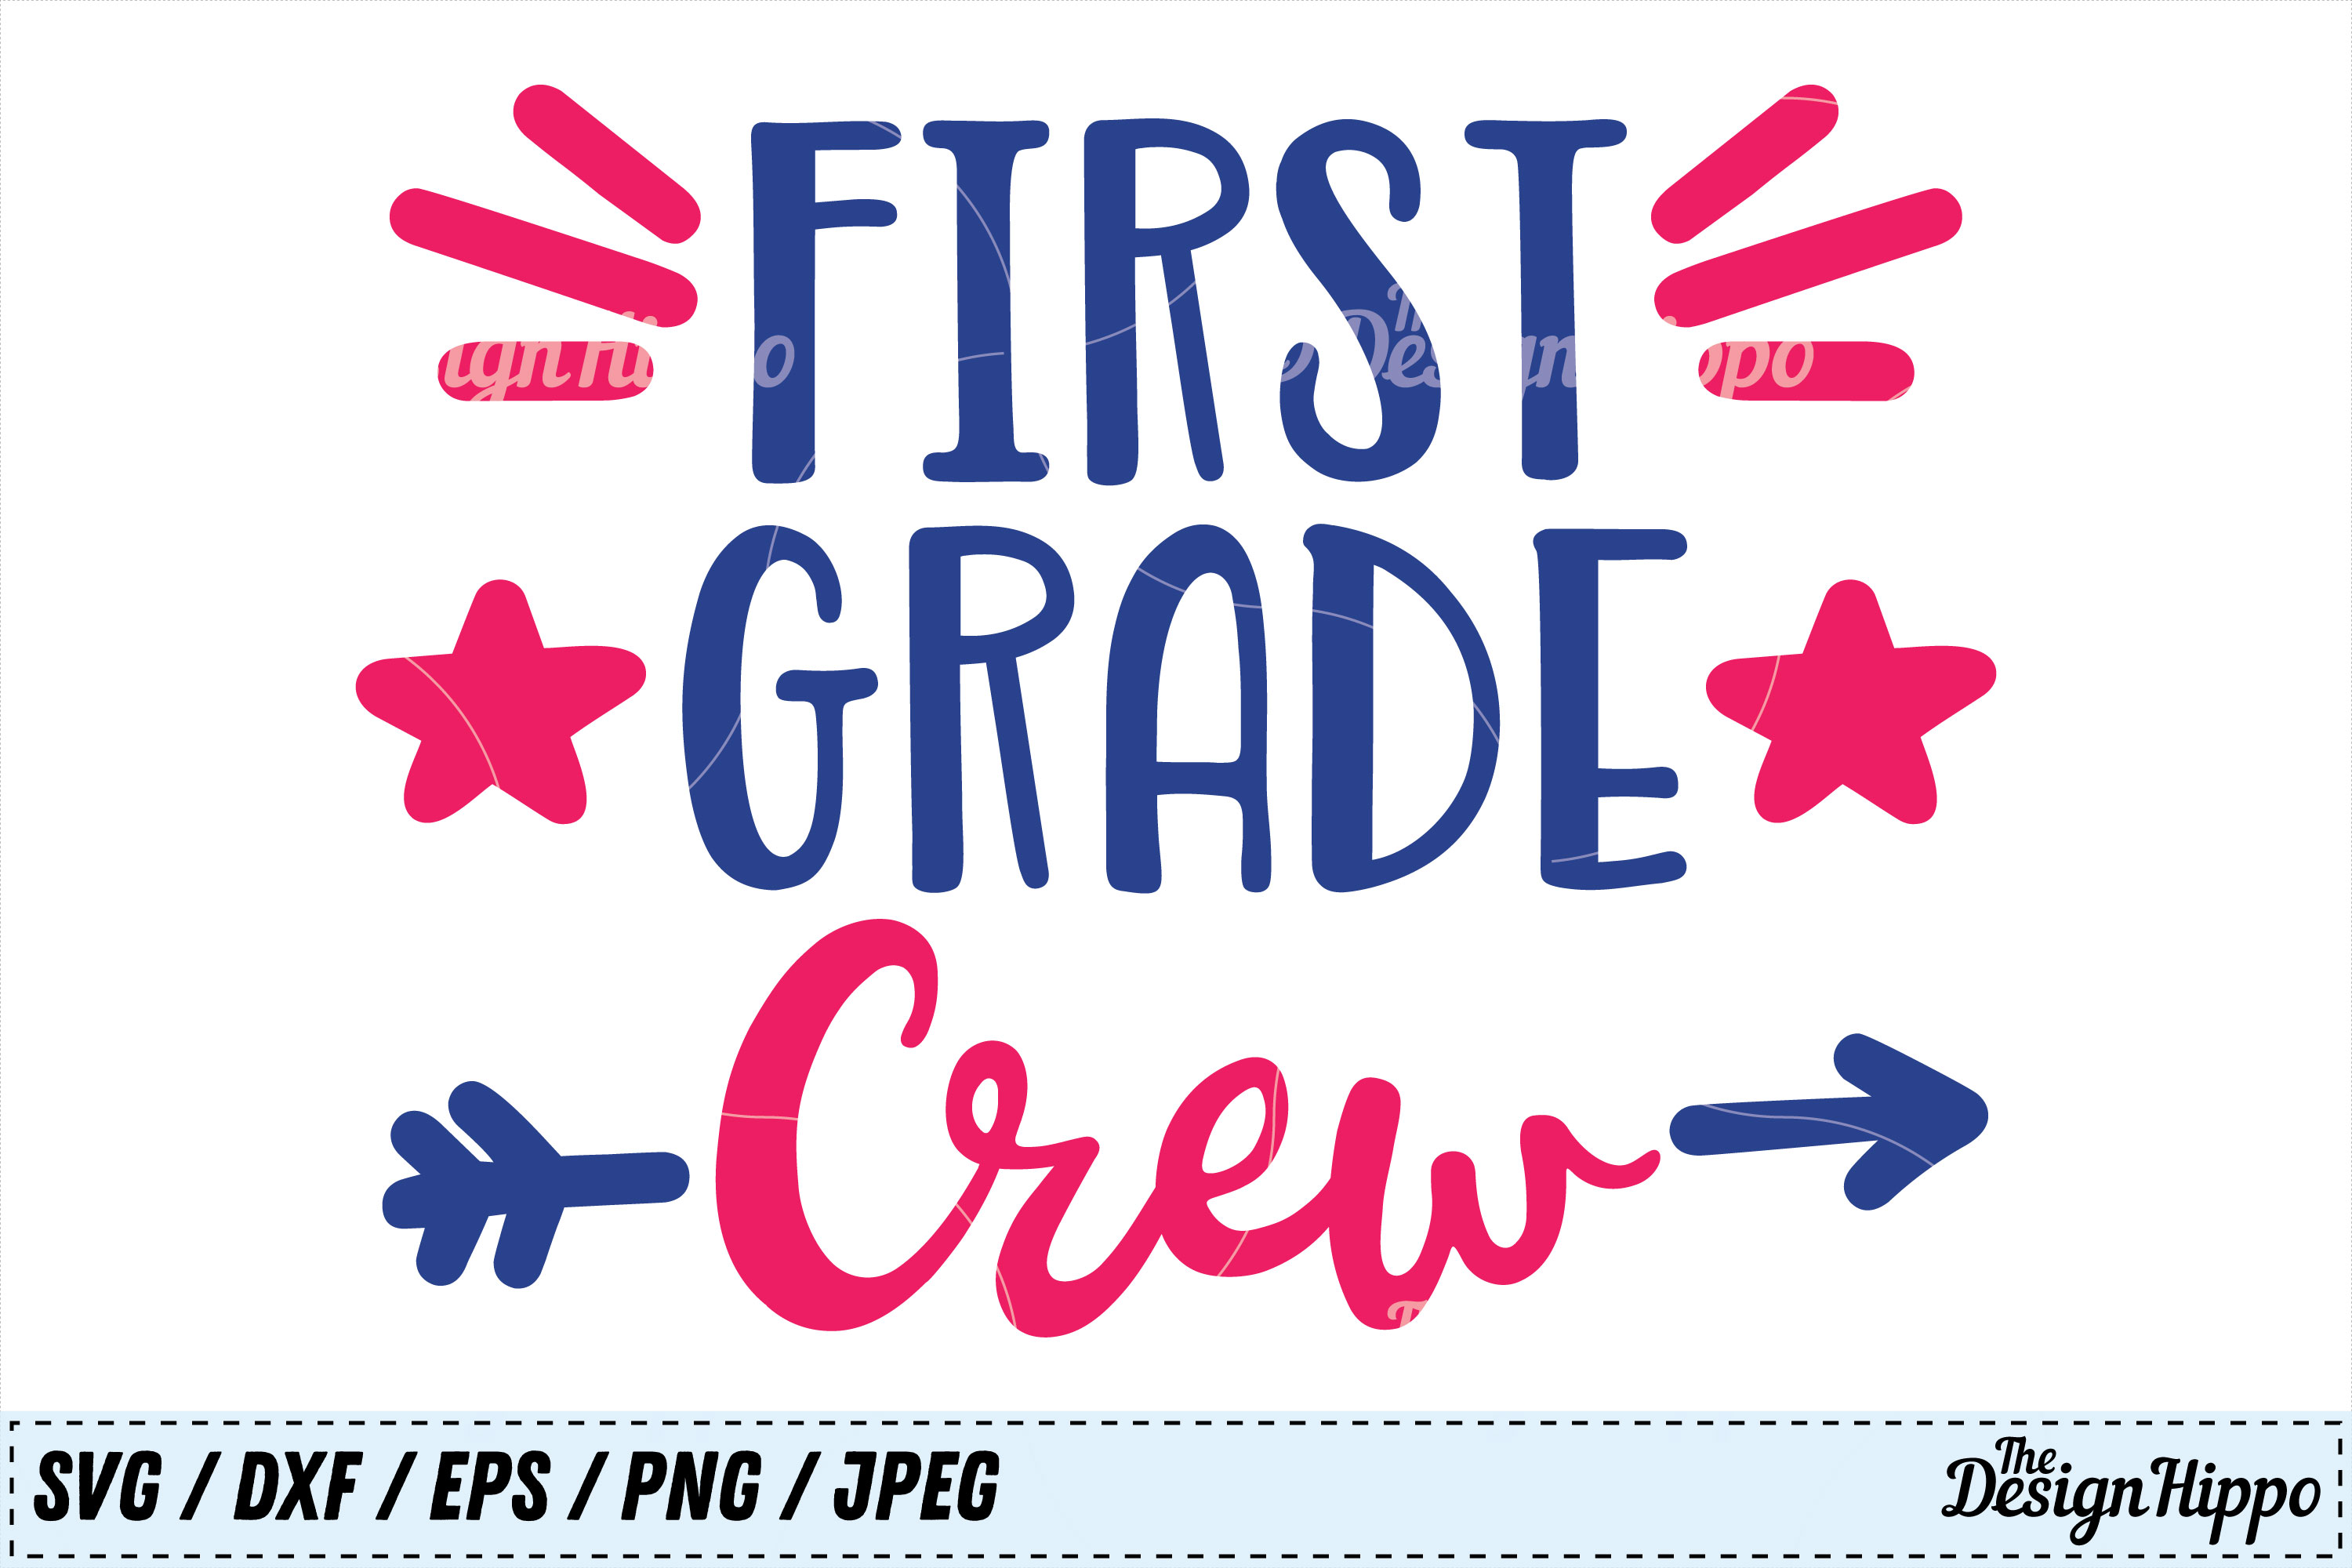 Download Free First Grade Crew Svg Graphic By Thedesignhippo Creative Fabrica for Cricut Explore, Silhouette and other cutting machines.